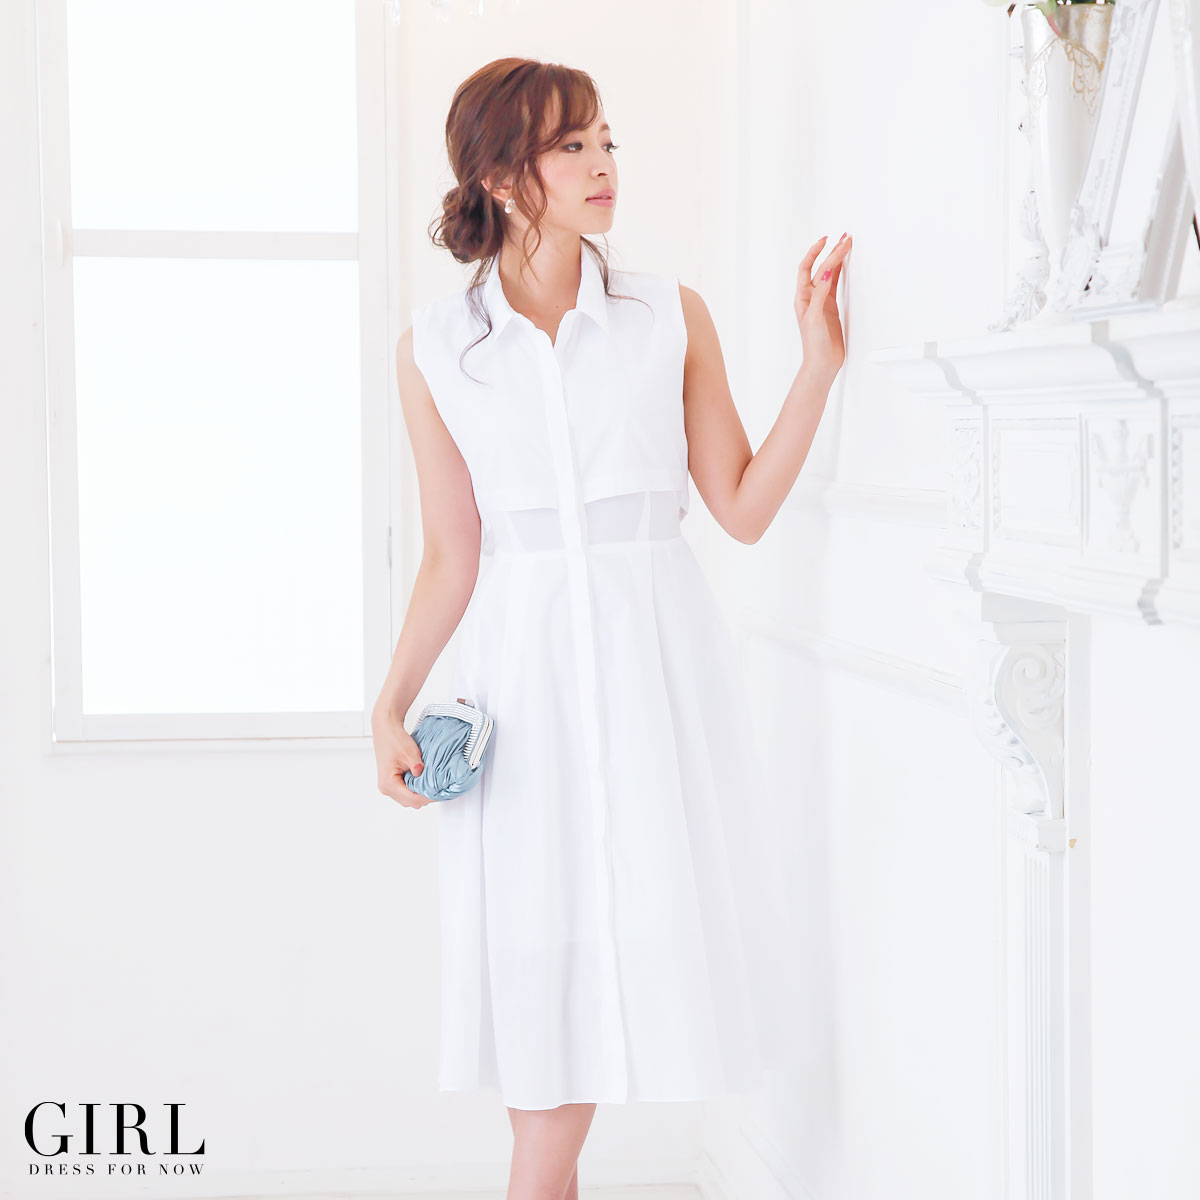 ad3761275719b Dress shop GIRL: One piece dress invited large size parties ladies formal  sleeveless sleeves 20s 30s 40s adult one size fits most   Rakuten Global  Market